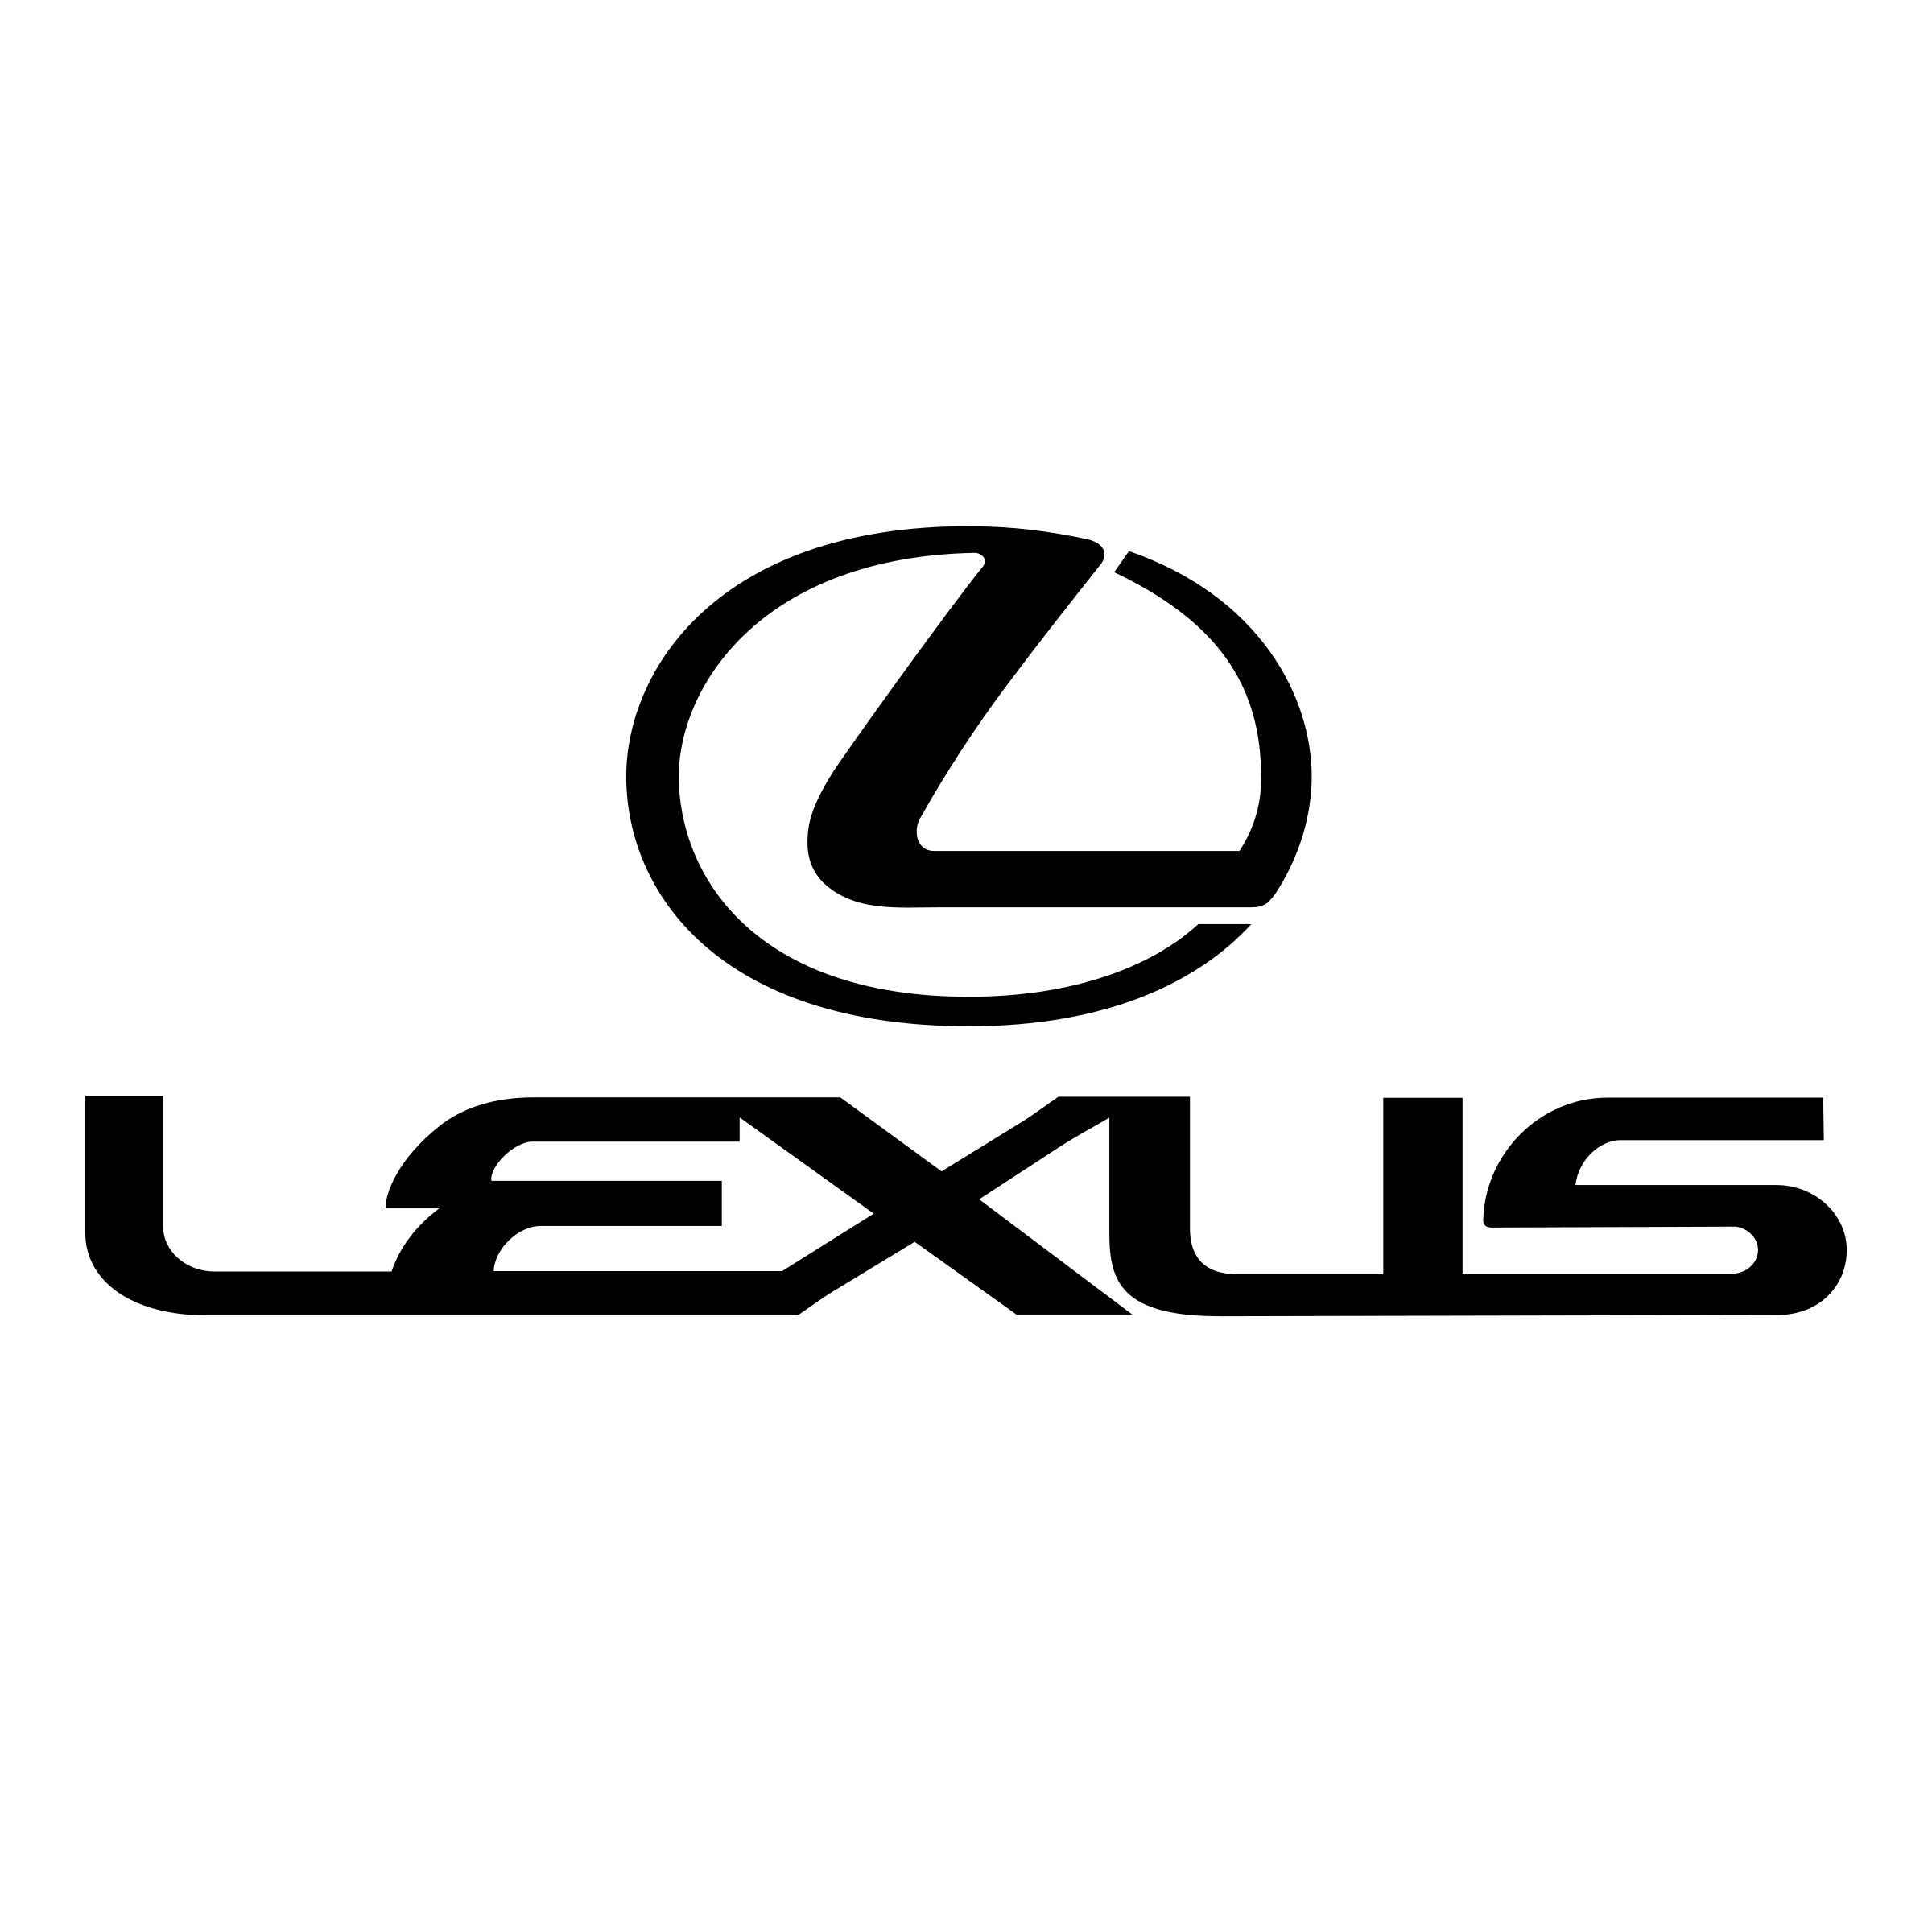 Lexus Logo - Lexus Logo PNG Transparent & SVG Vector - Freebie Supply